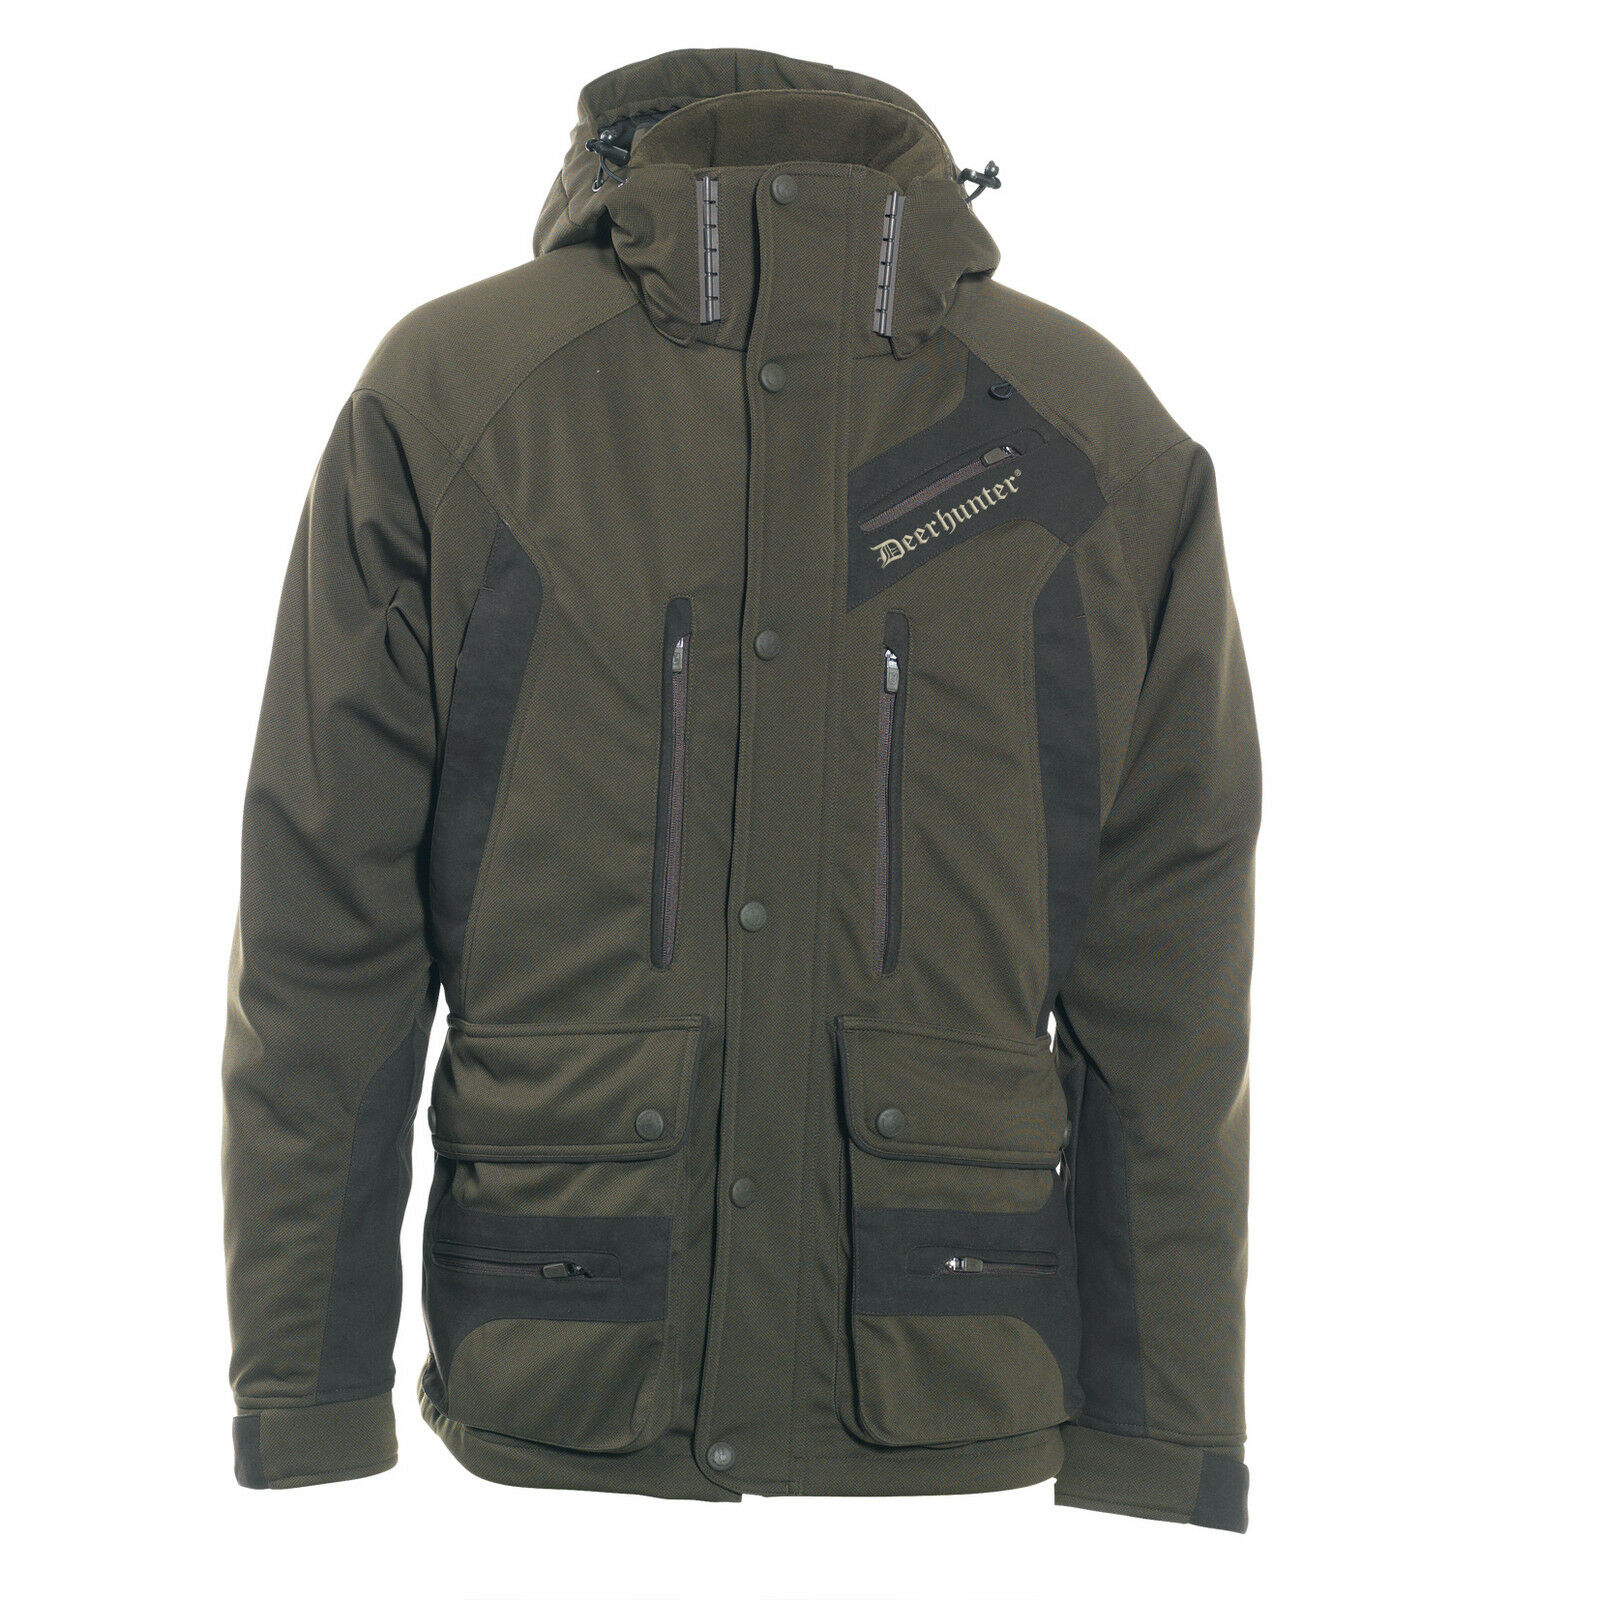 Caza chaqueta muflon brevemente M thinsulate para invierno 376-art verde Deerhunter 5822